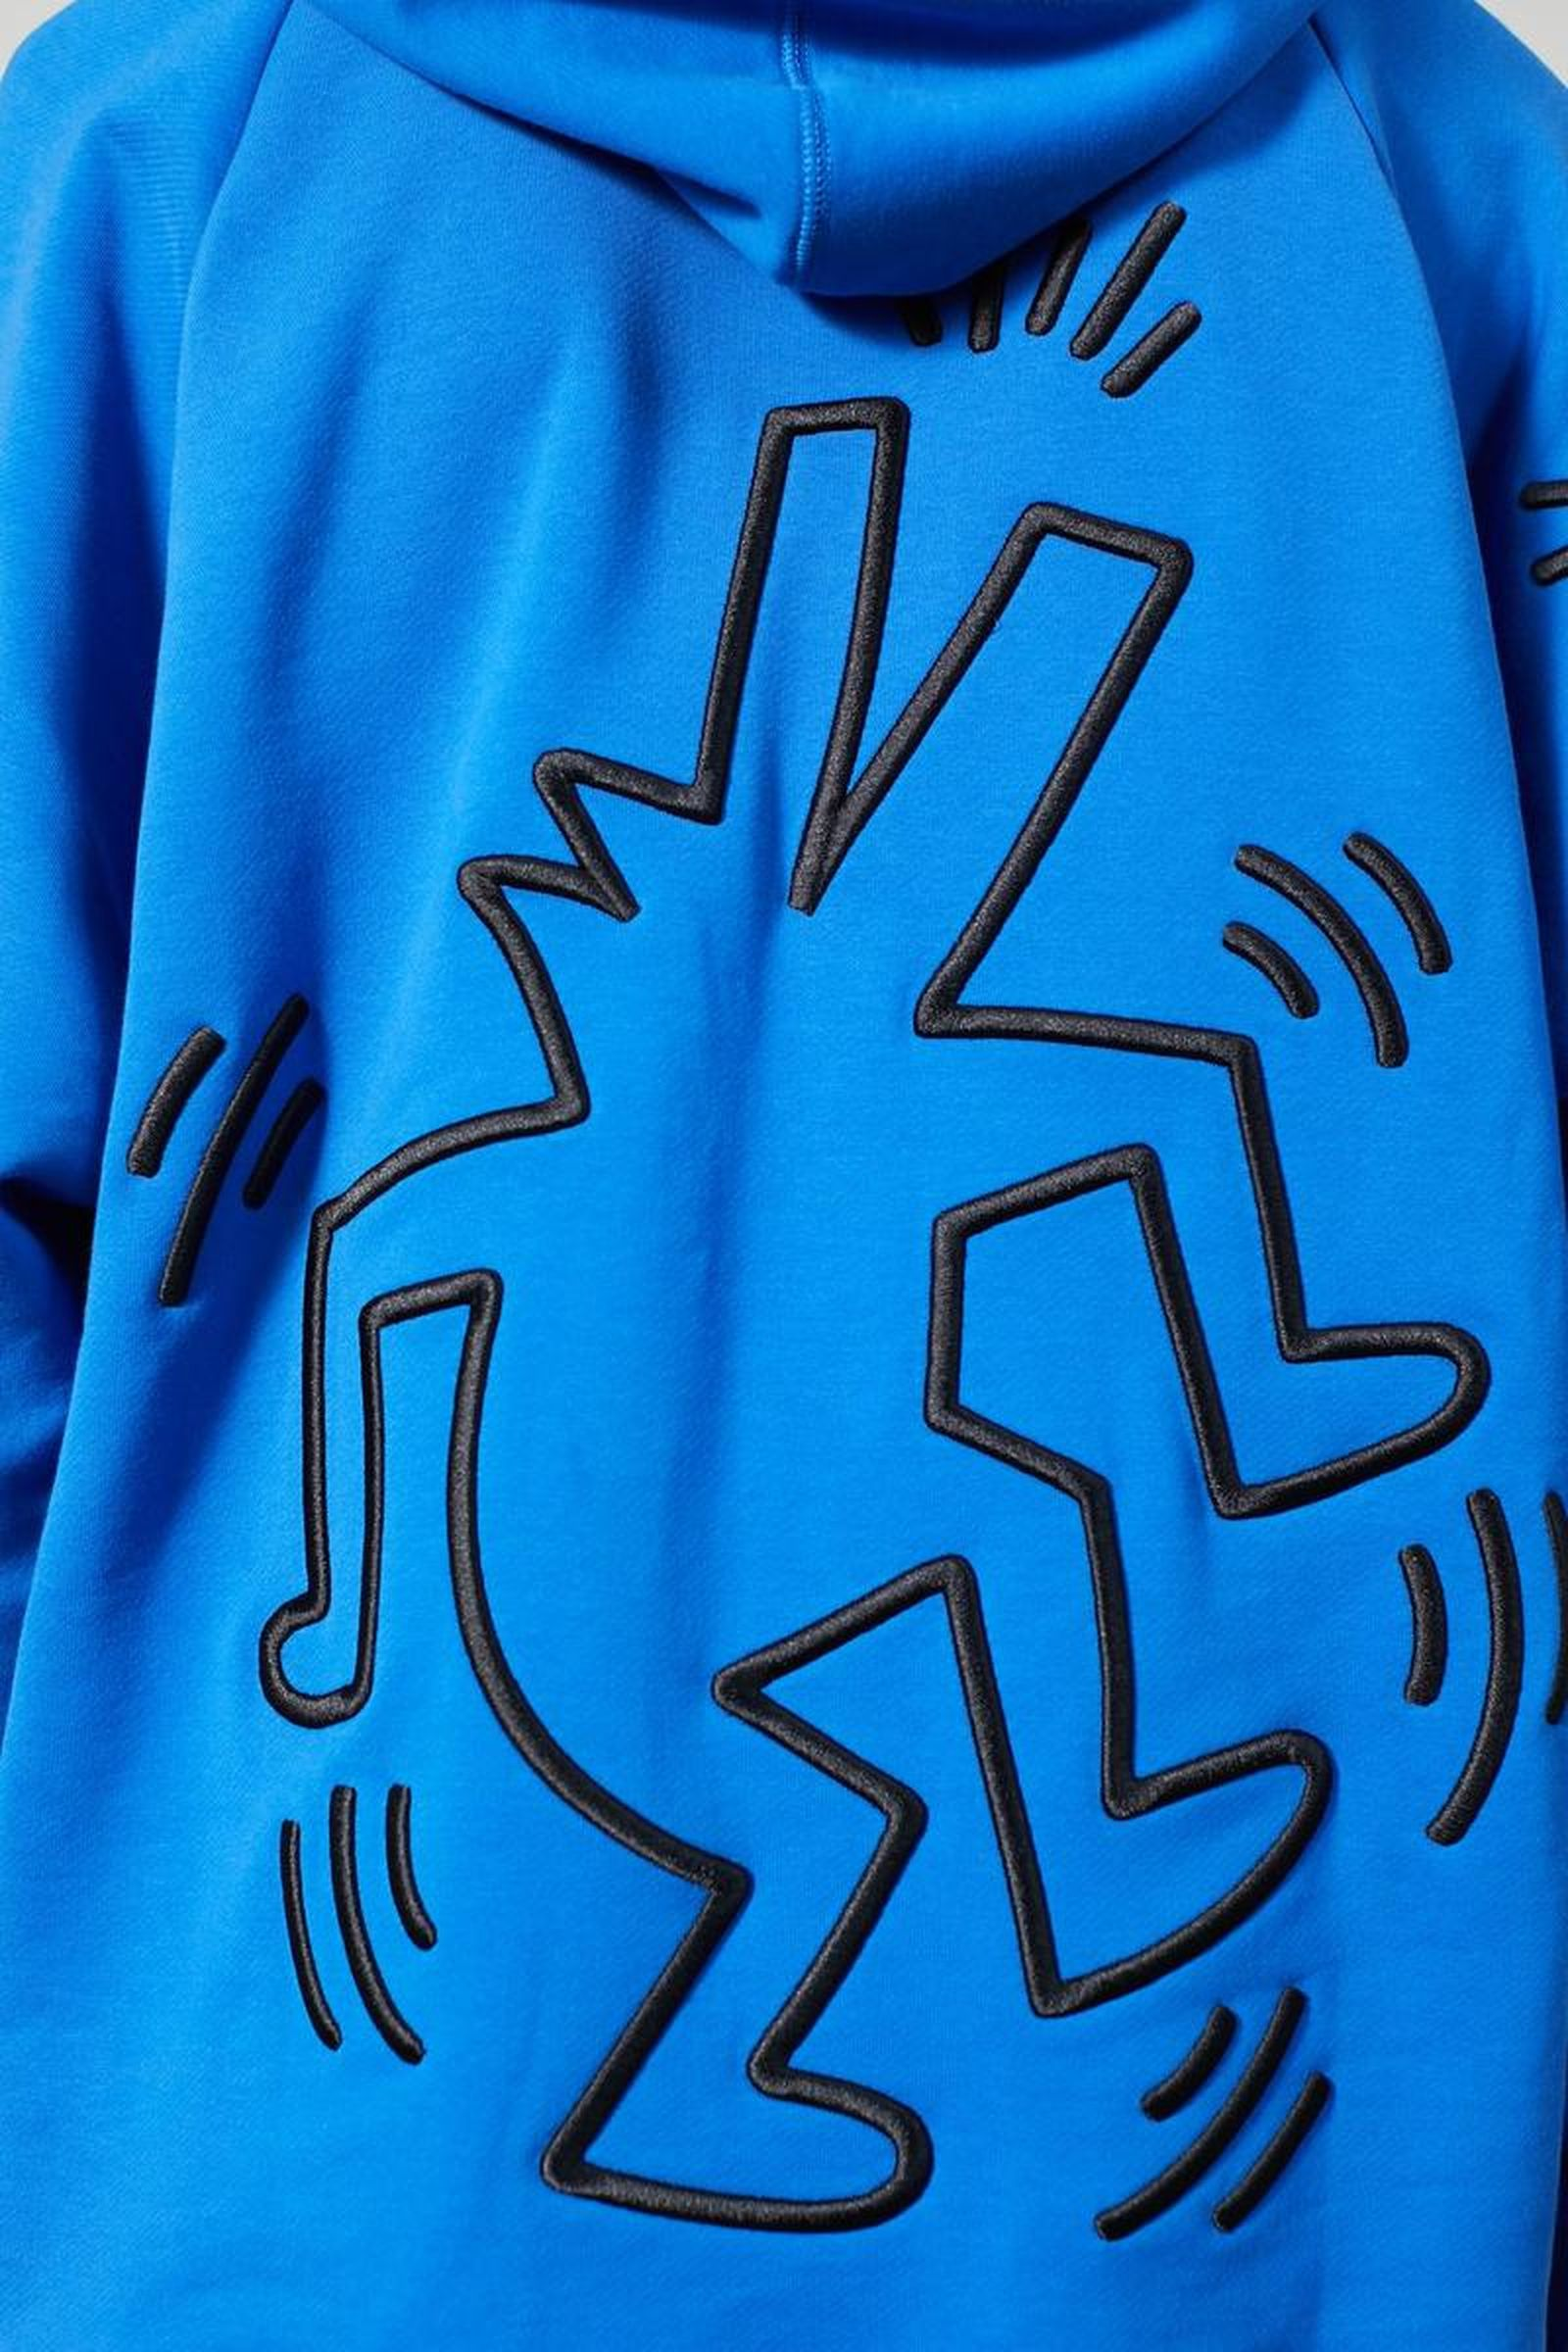 12etudes-keith-haring-ss20-collection